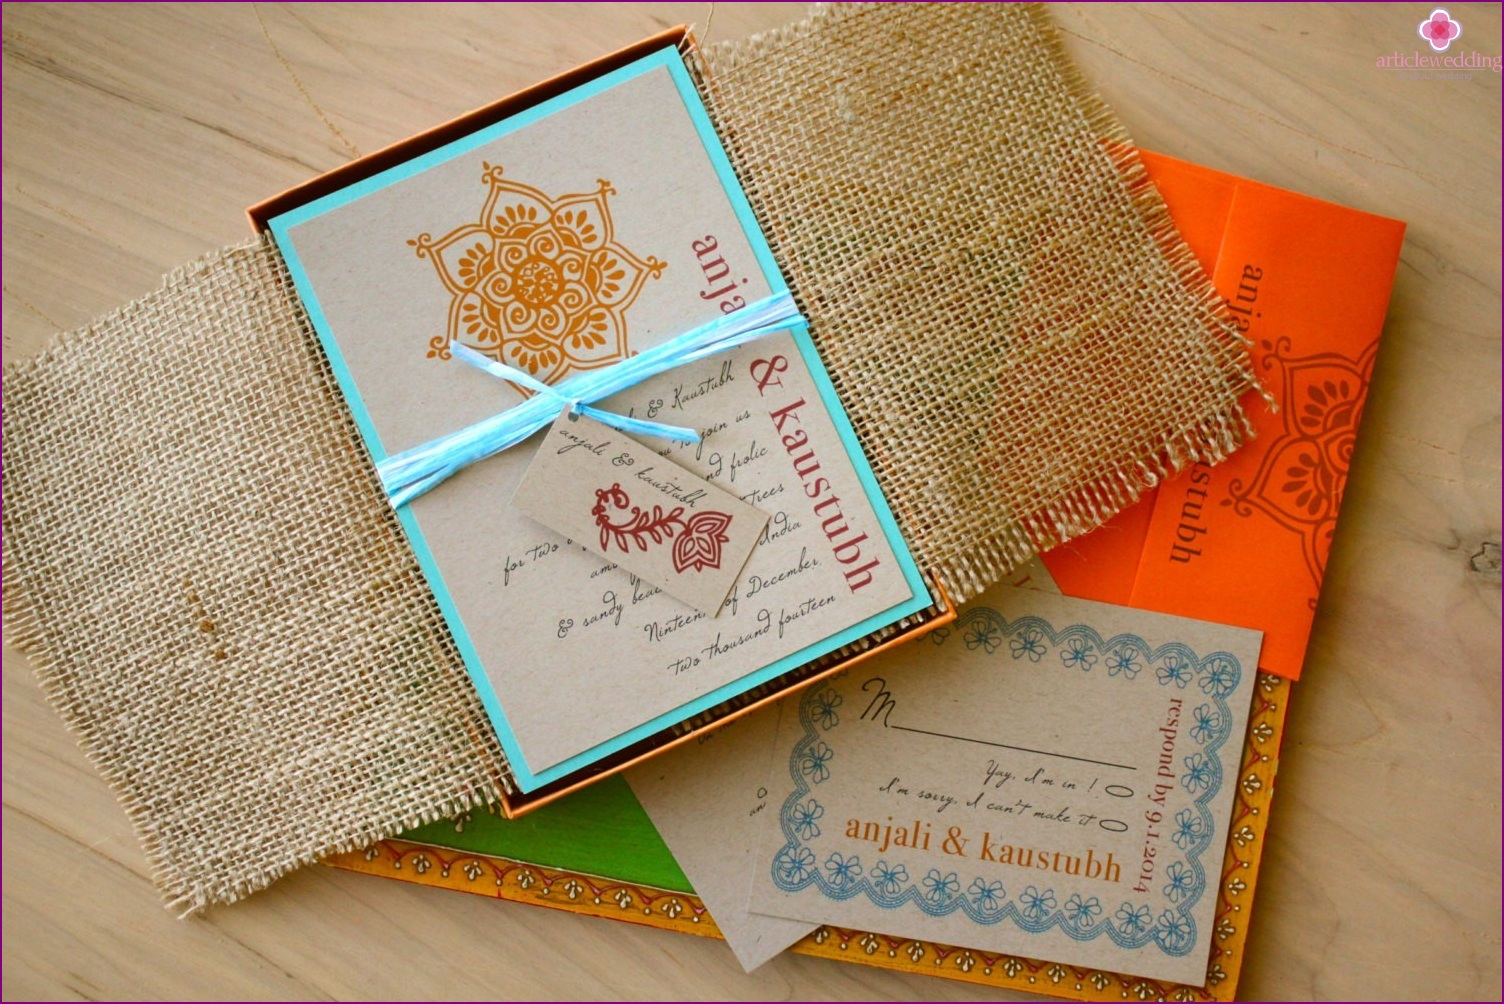 Invitations to the bohemian style